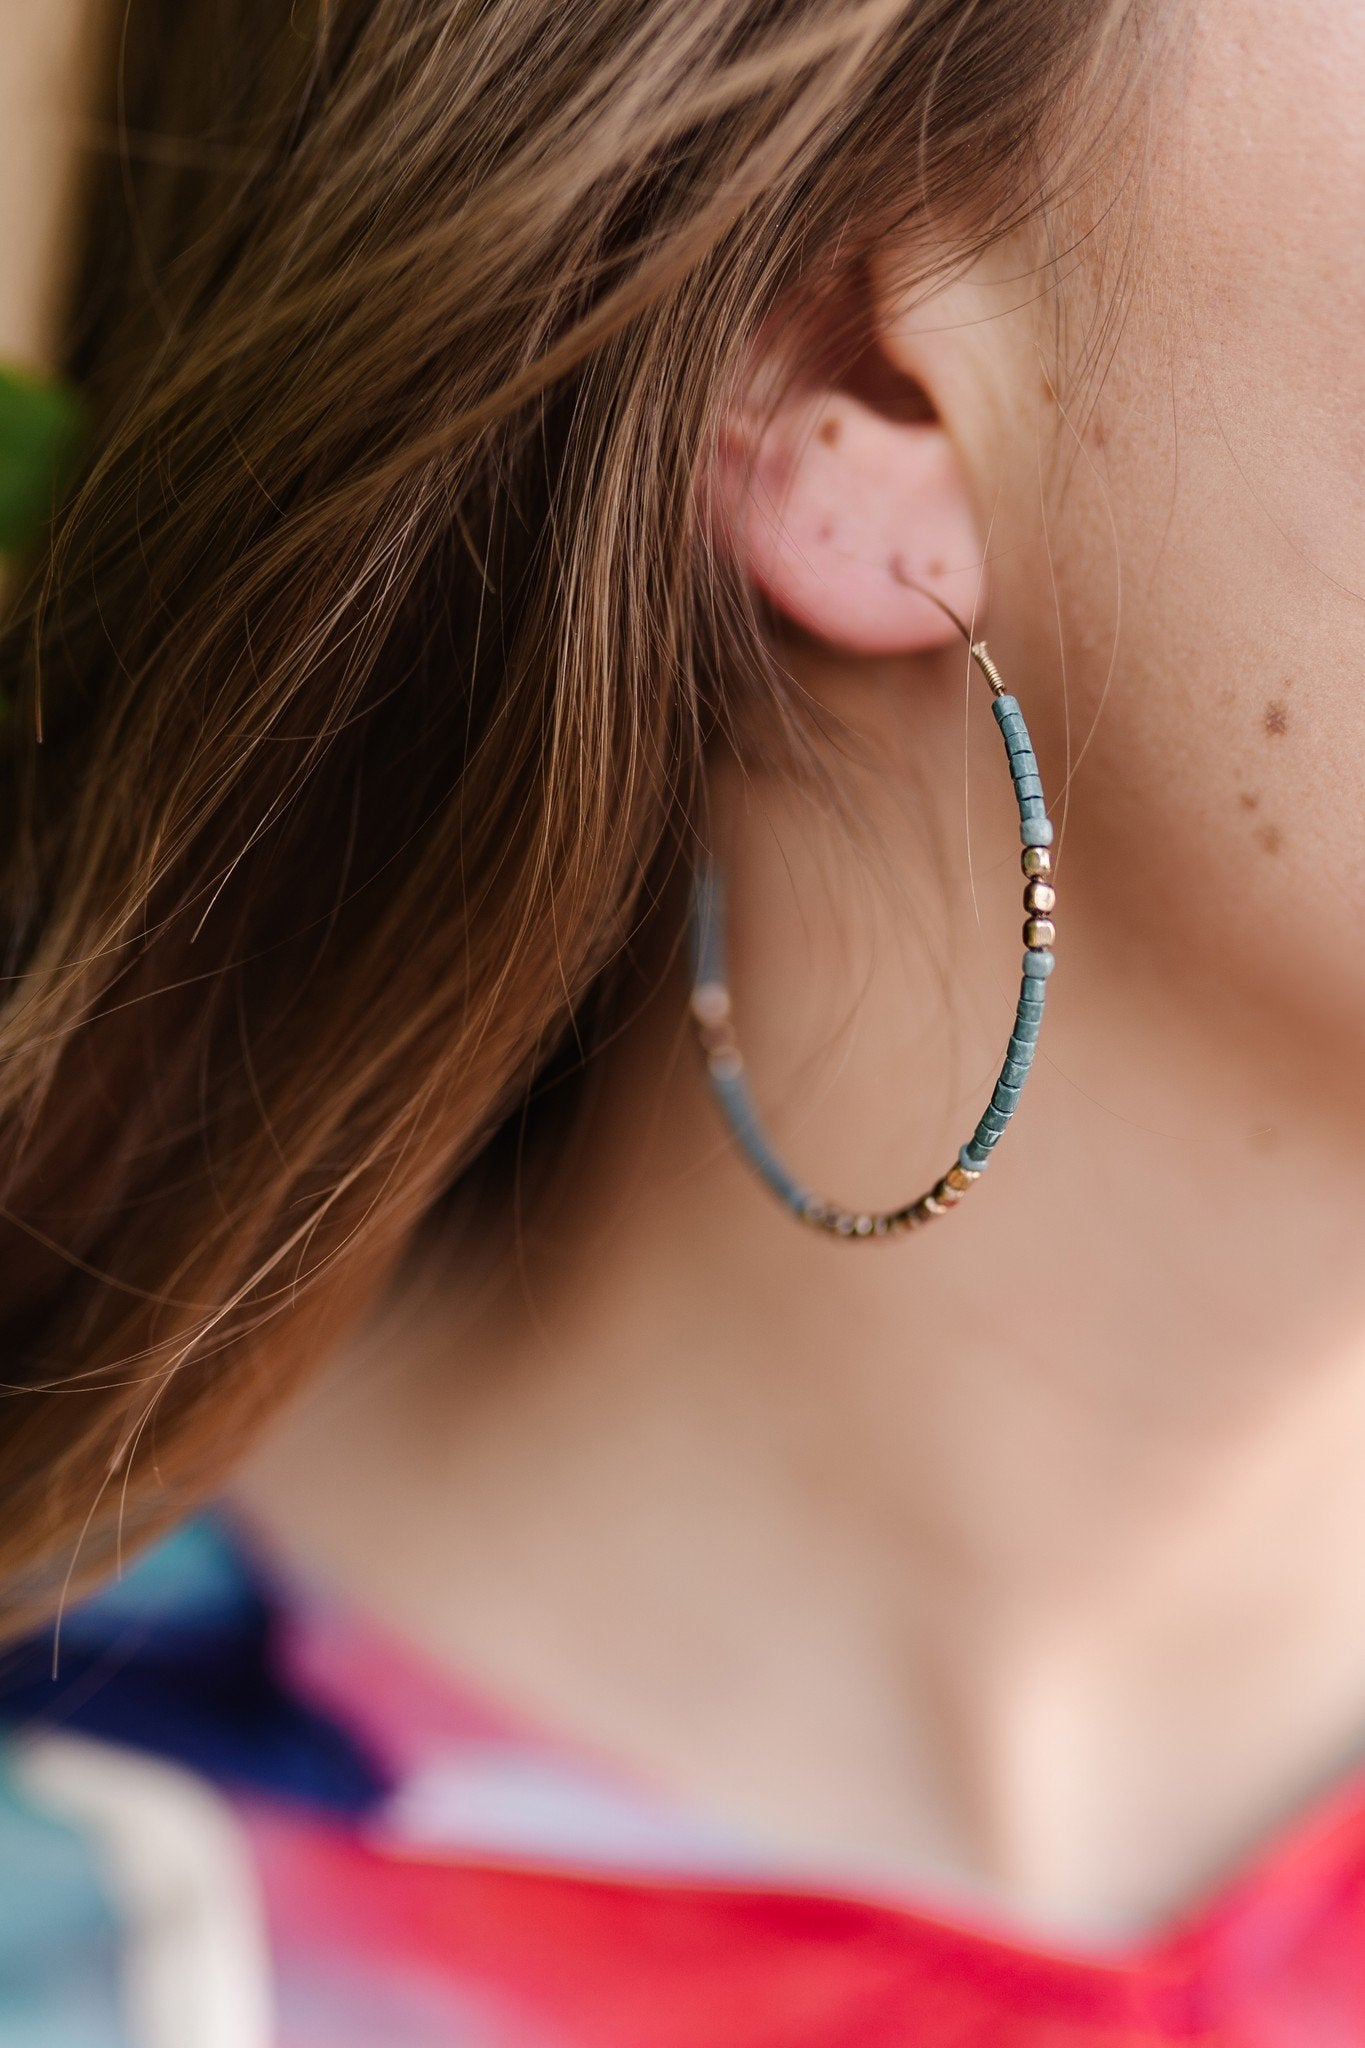 The Perfect Touch Gold and Turquoise Hoop Earrings-One Size Fits Most-[option4]-[option5]-[option6]-[option7]-[option8]-Womens-Clothing-Shop